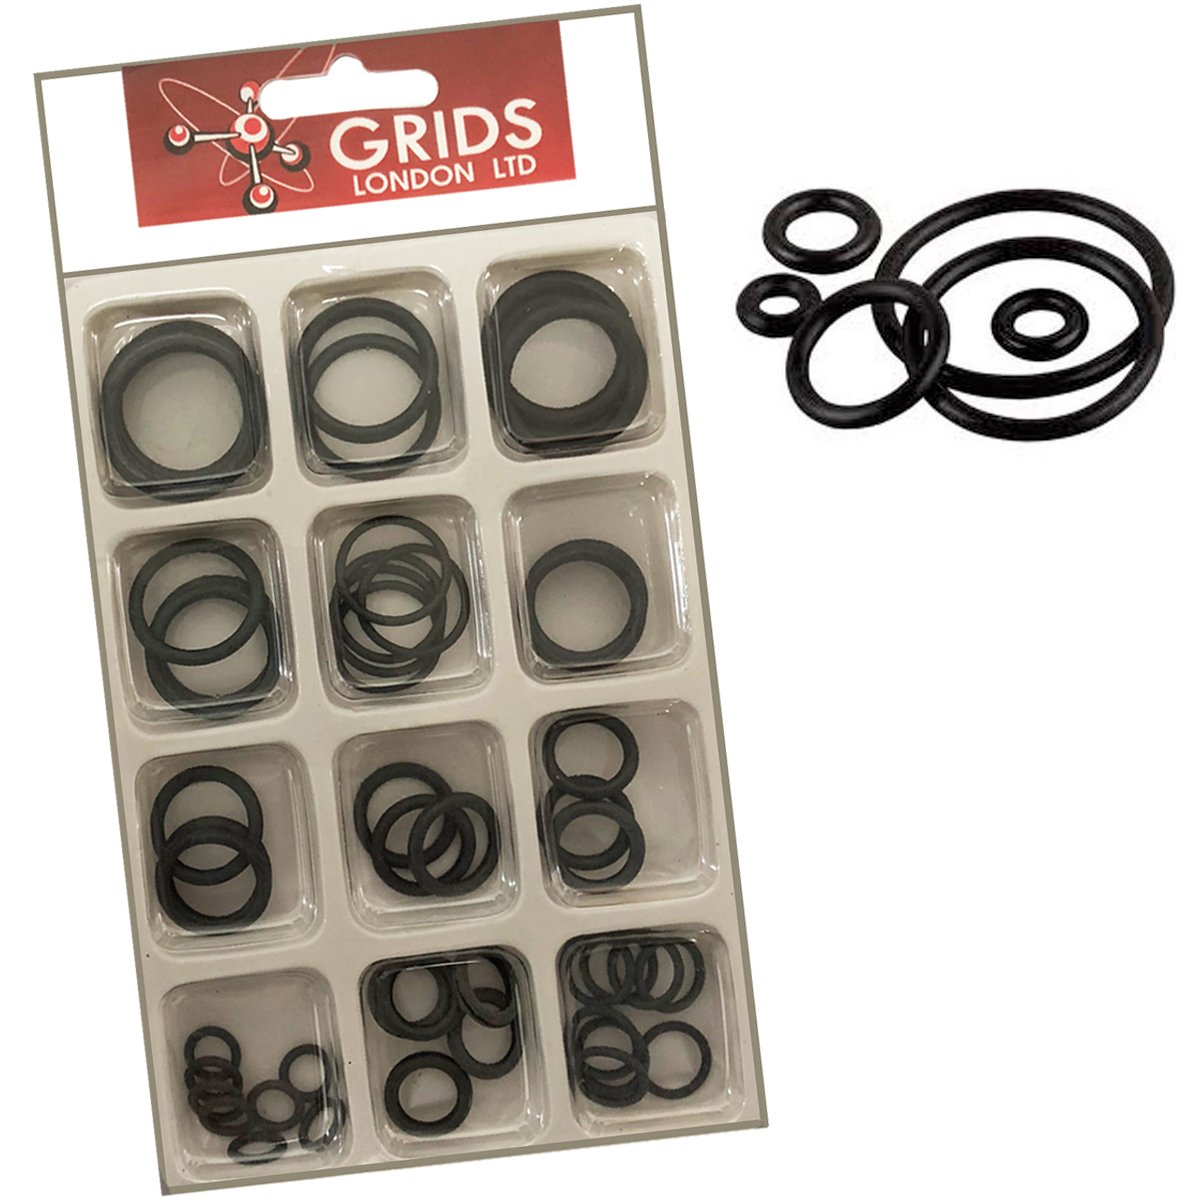 Assorted Size Pack of O Rings Plumbing DIY Air Seal Rubber Tap Sink ...